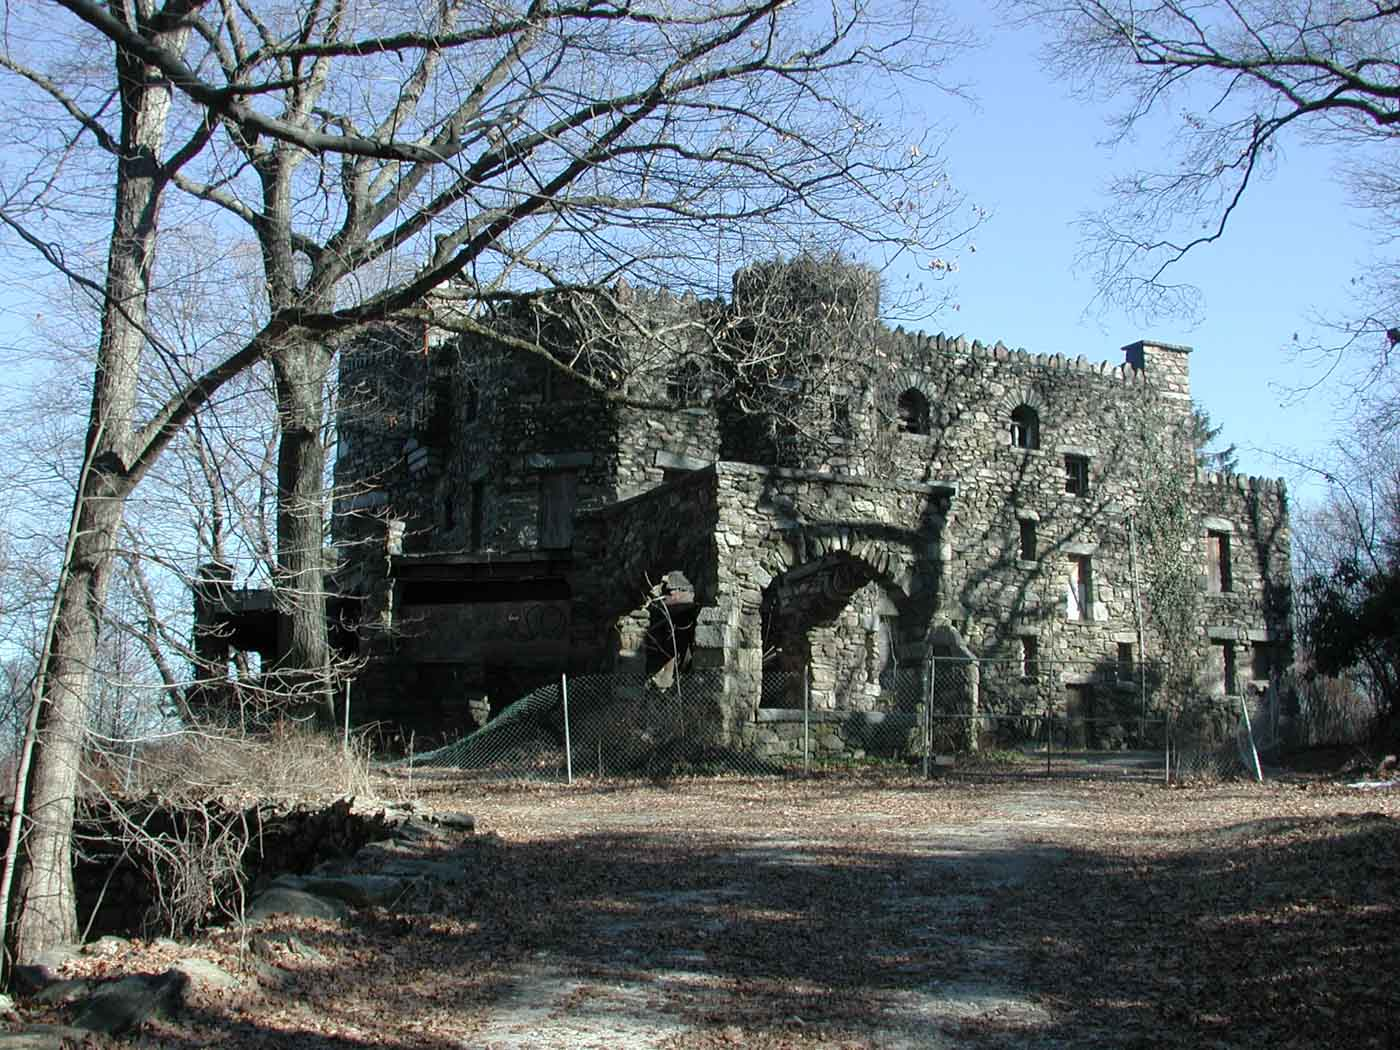 hearthstone-castle-seen-from-driveway-abandoned-boarded-up